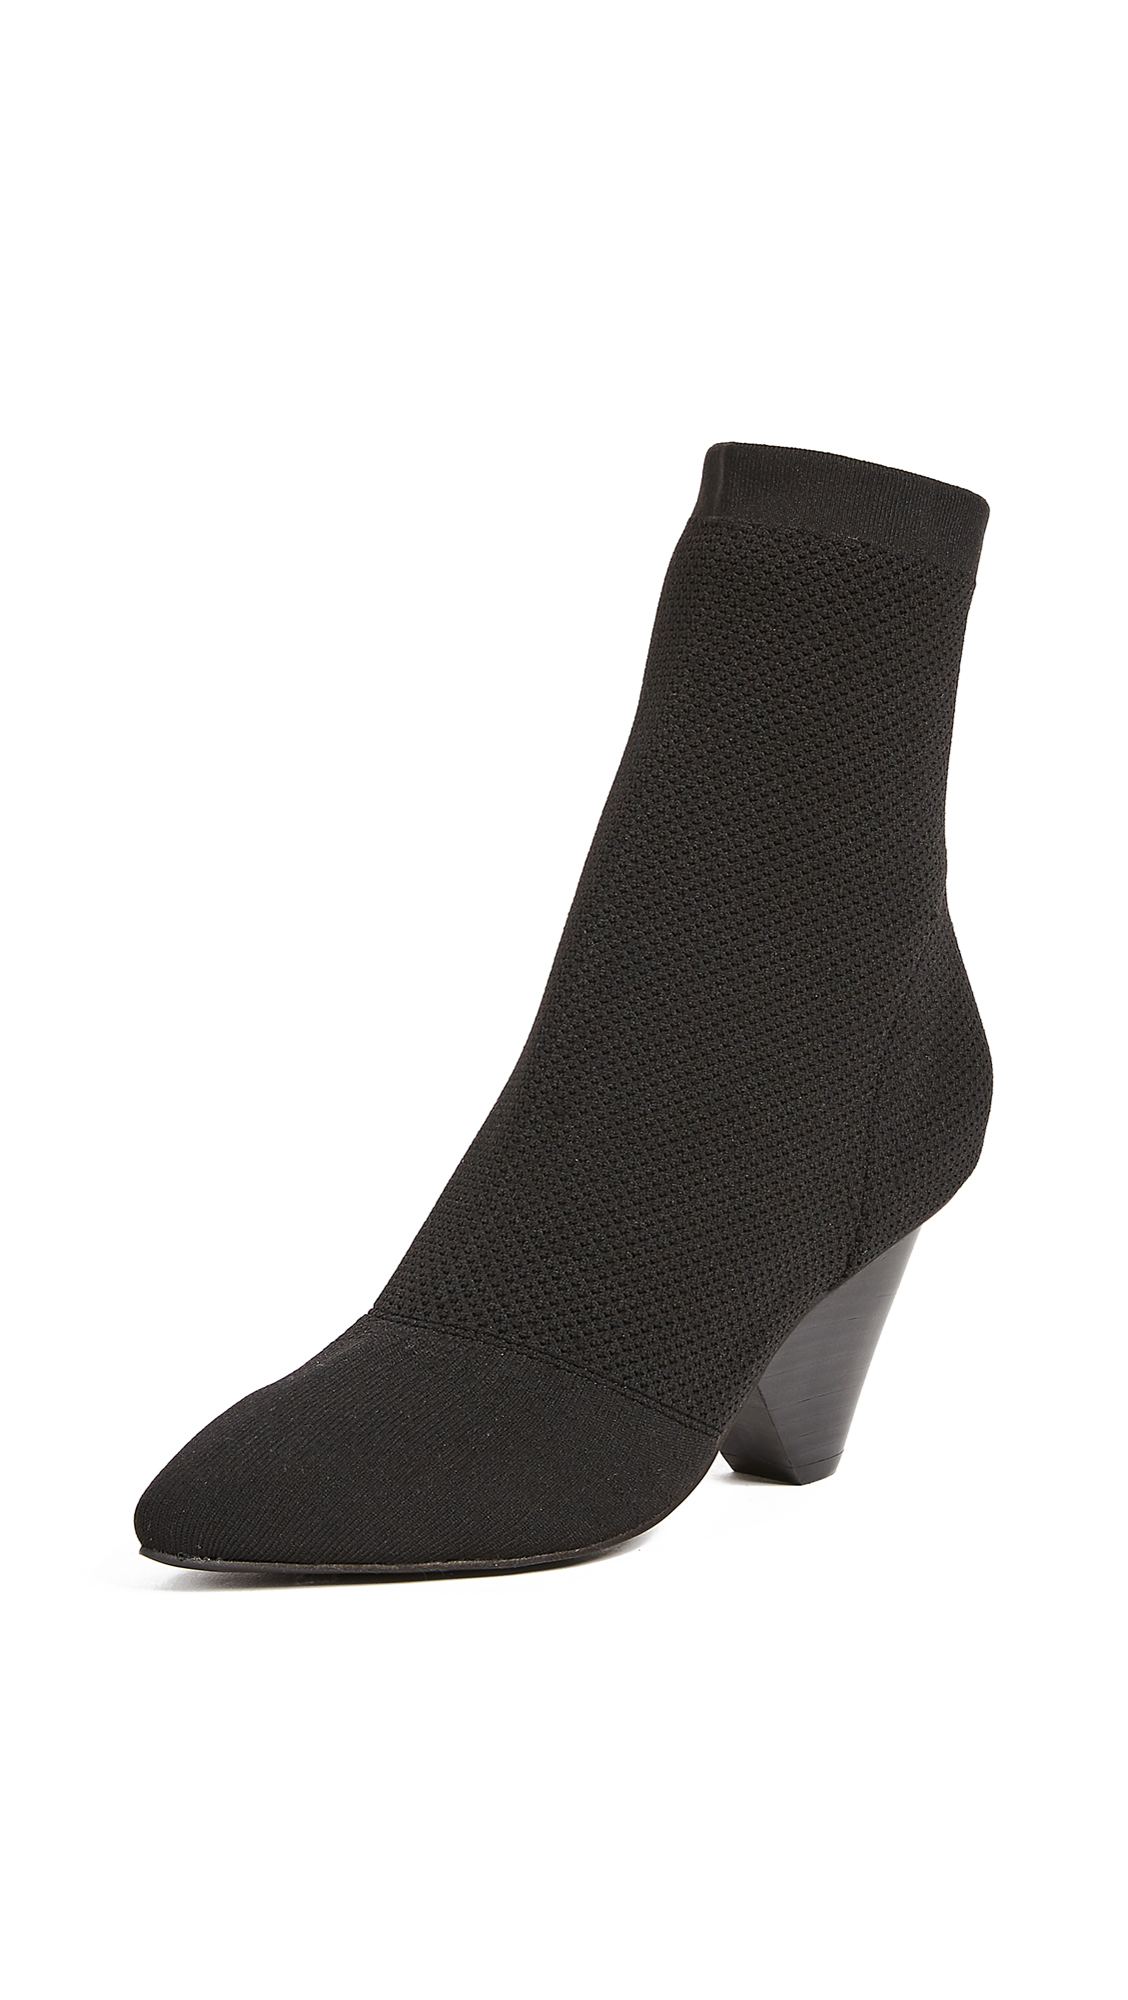 Jeffrey Campbell Acadia Sock Booties - Black